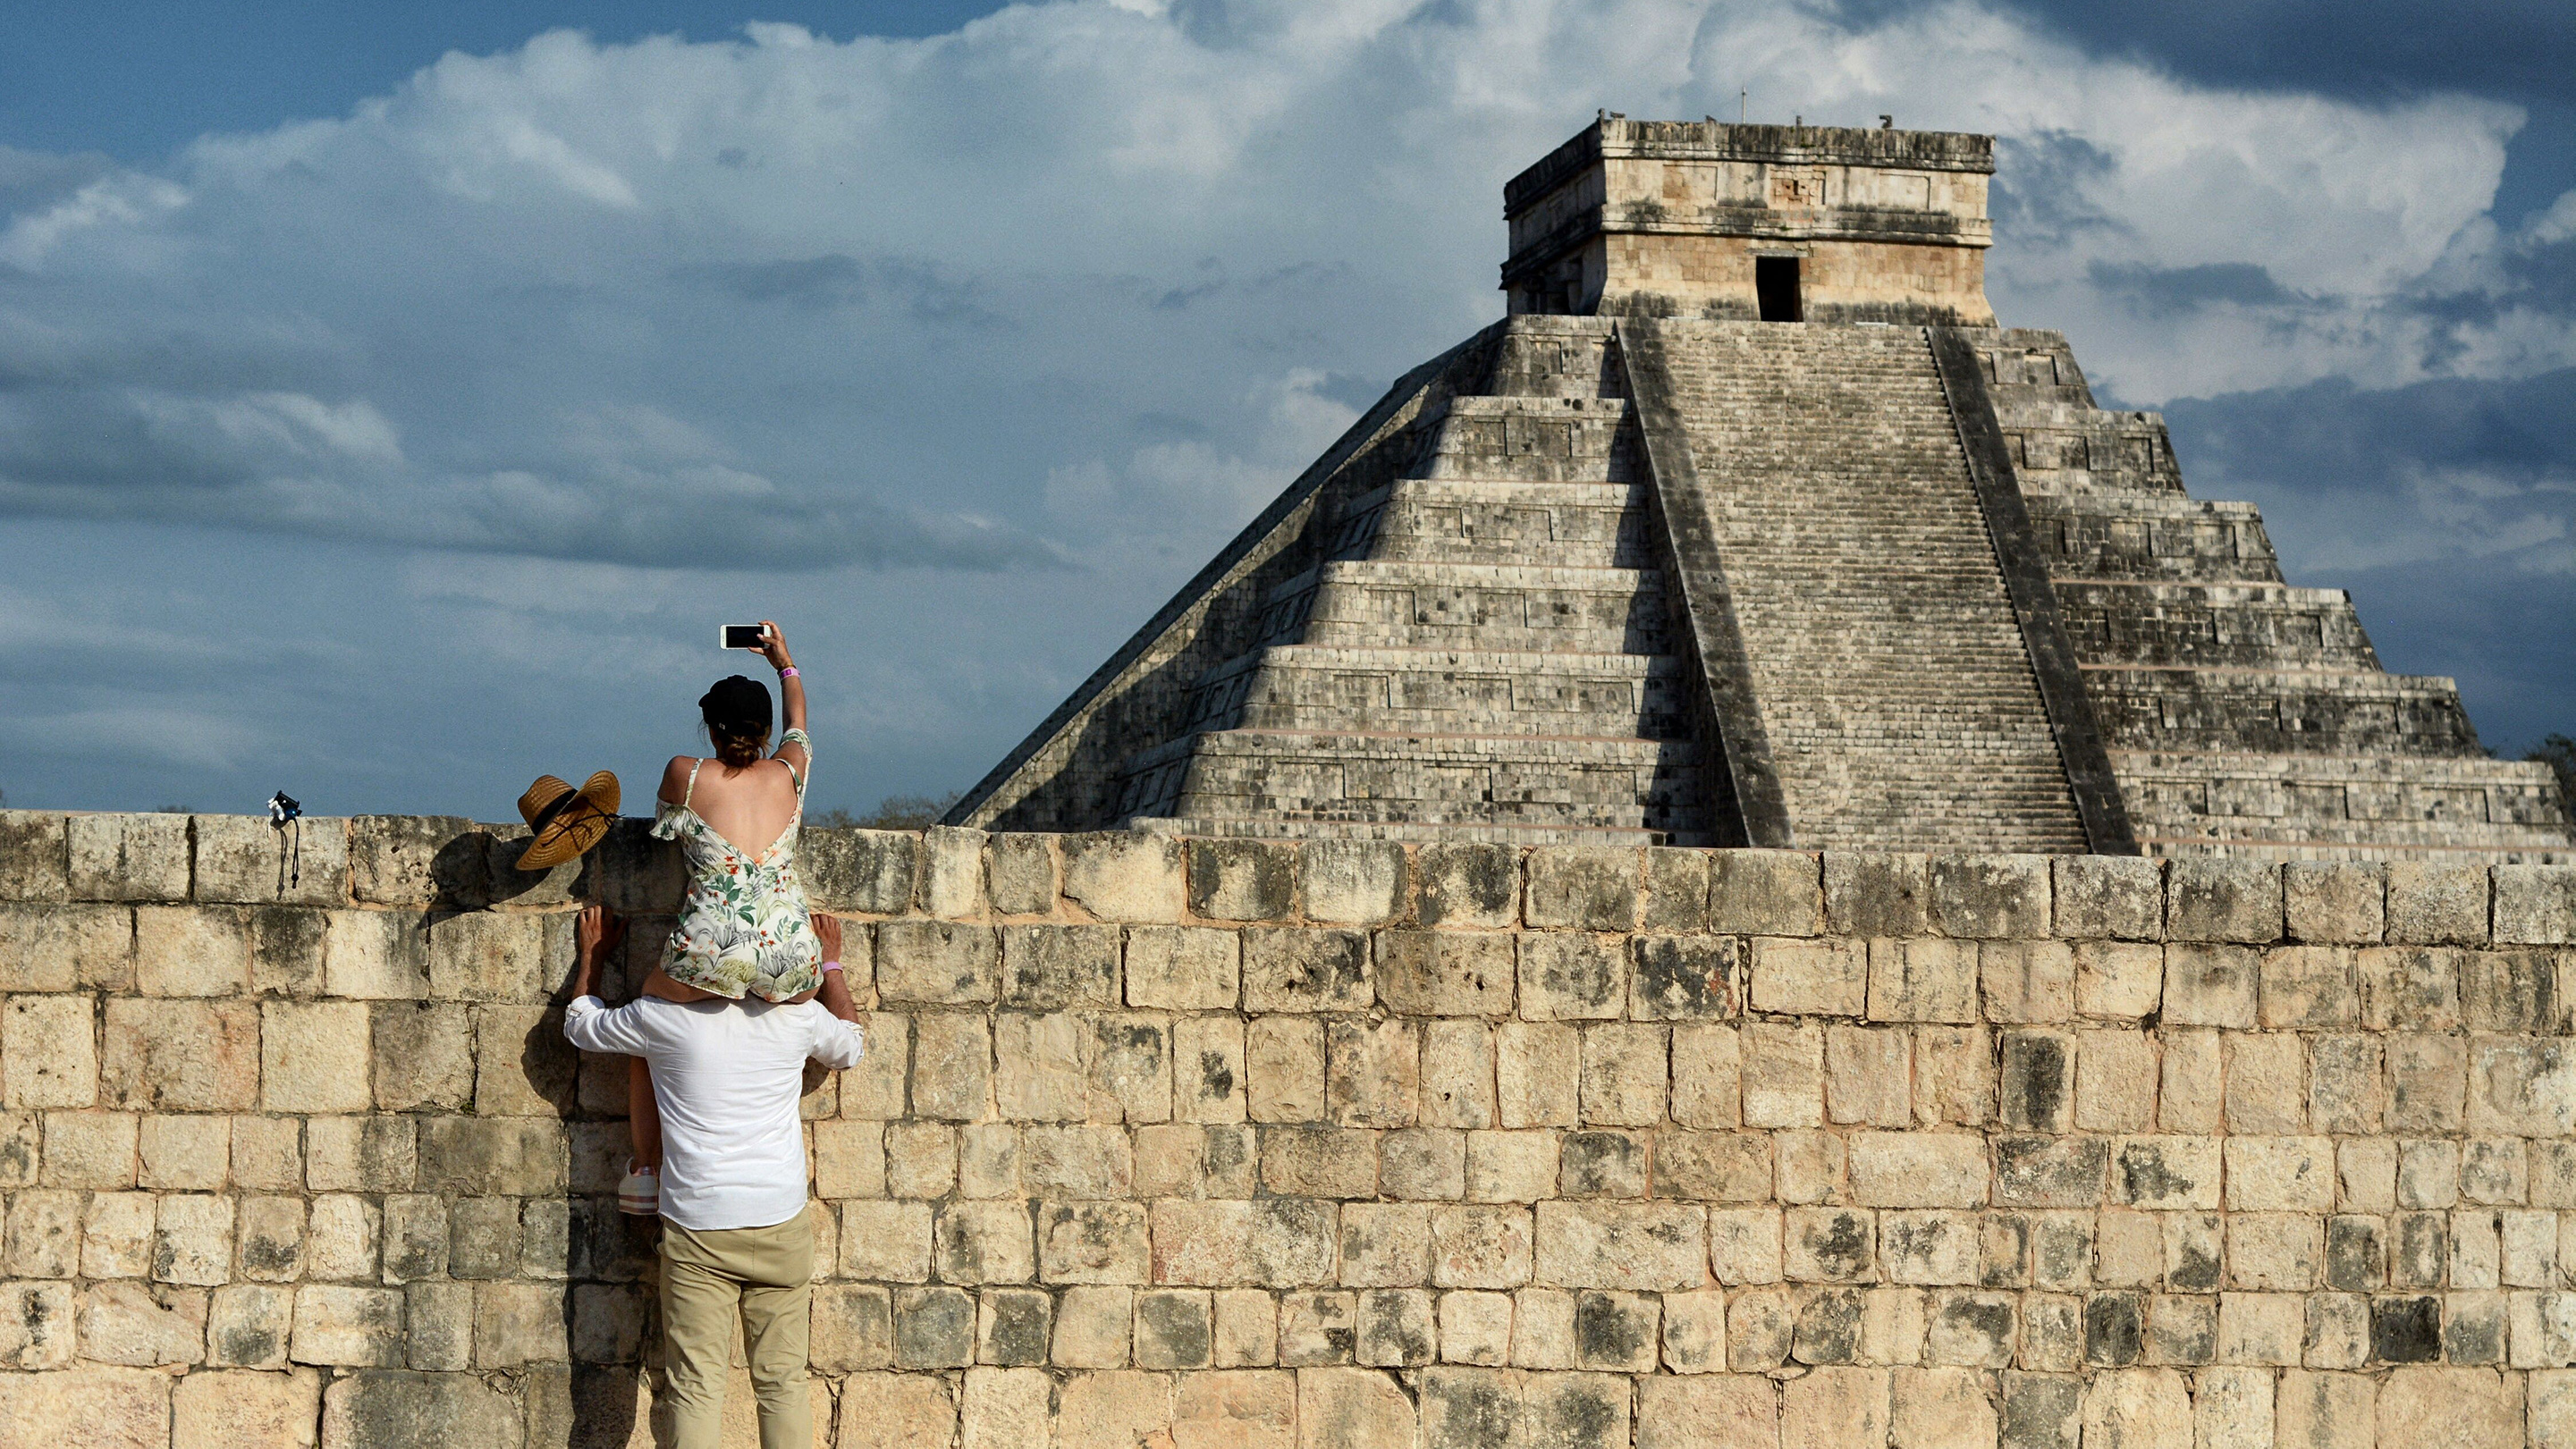 In an ancient Mesoamerican city, archaeologists find a narrow wealth gap